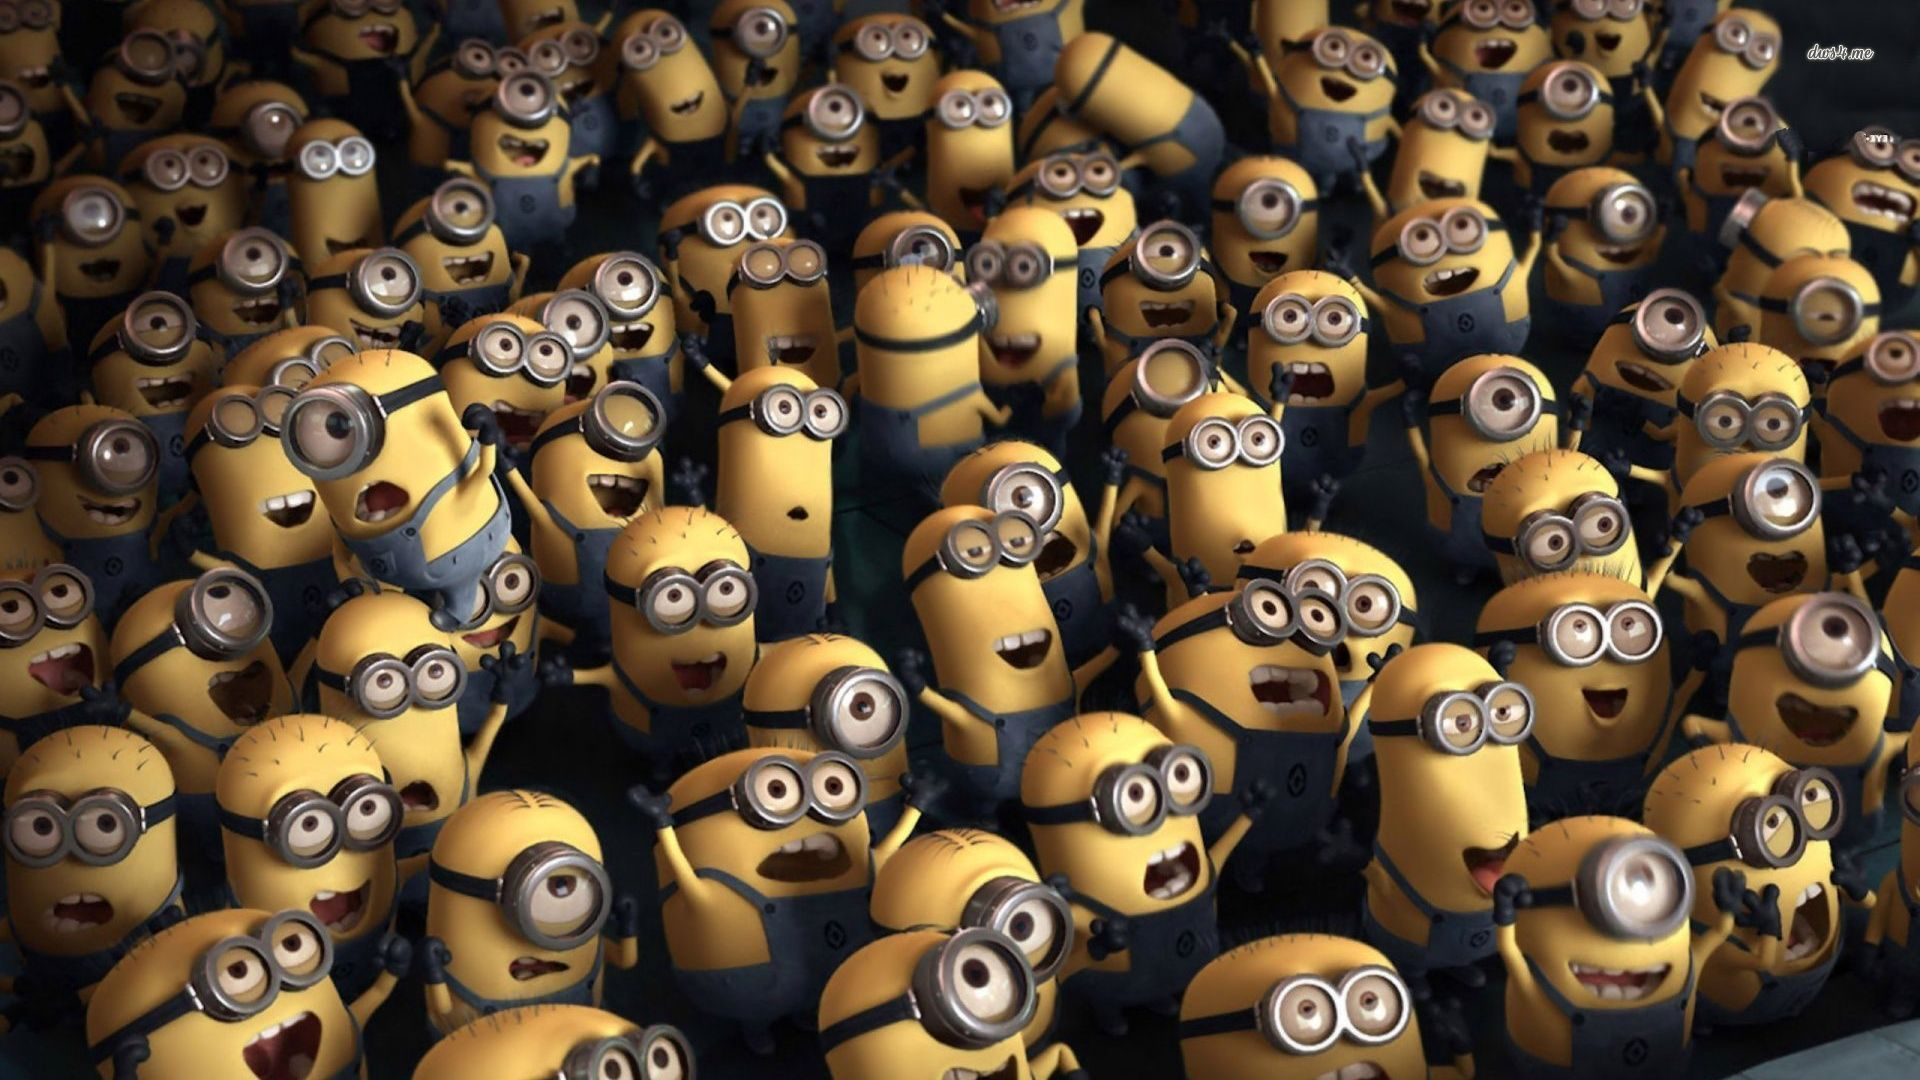 Pin On Assemble The Minions